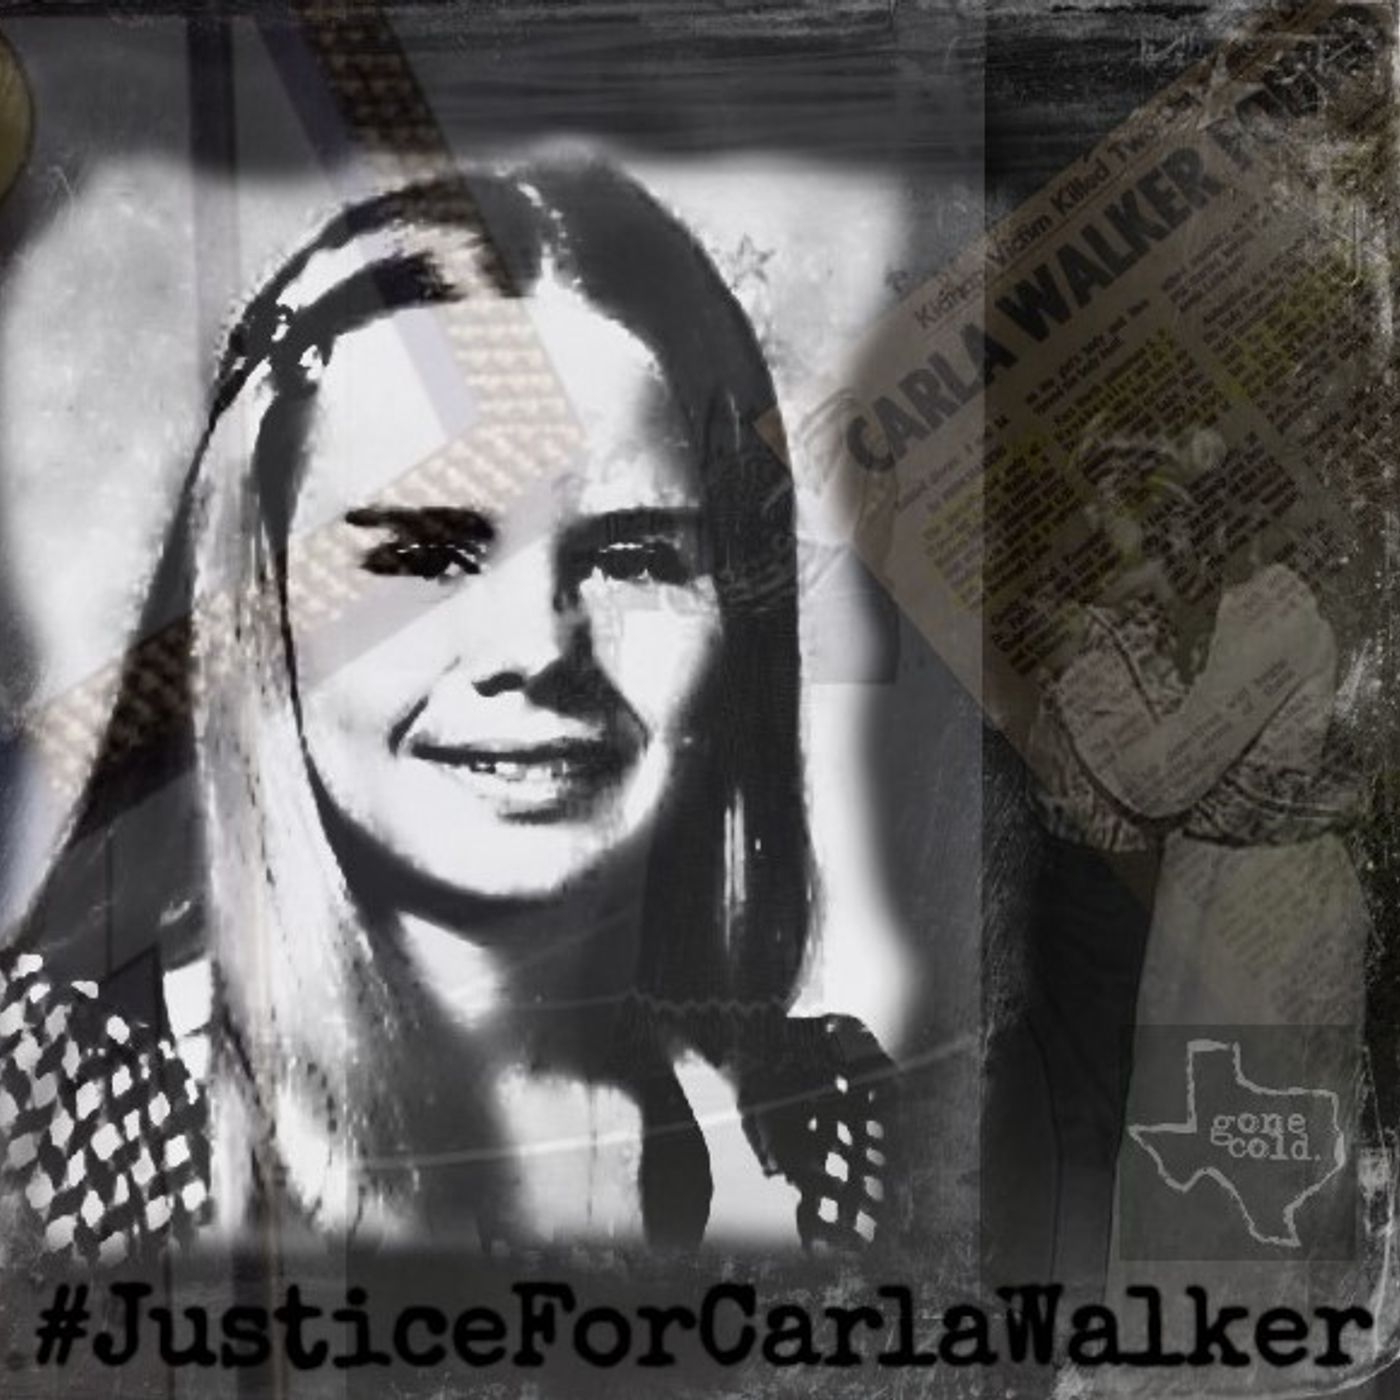 Carla Walker: The Arrest of Glen Samuel McCurley